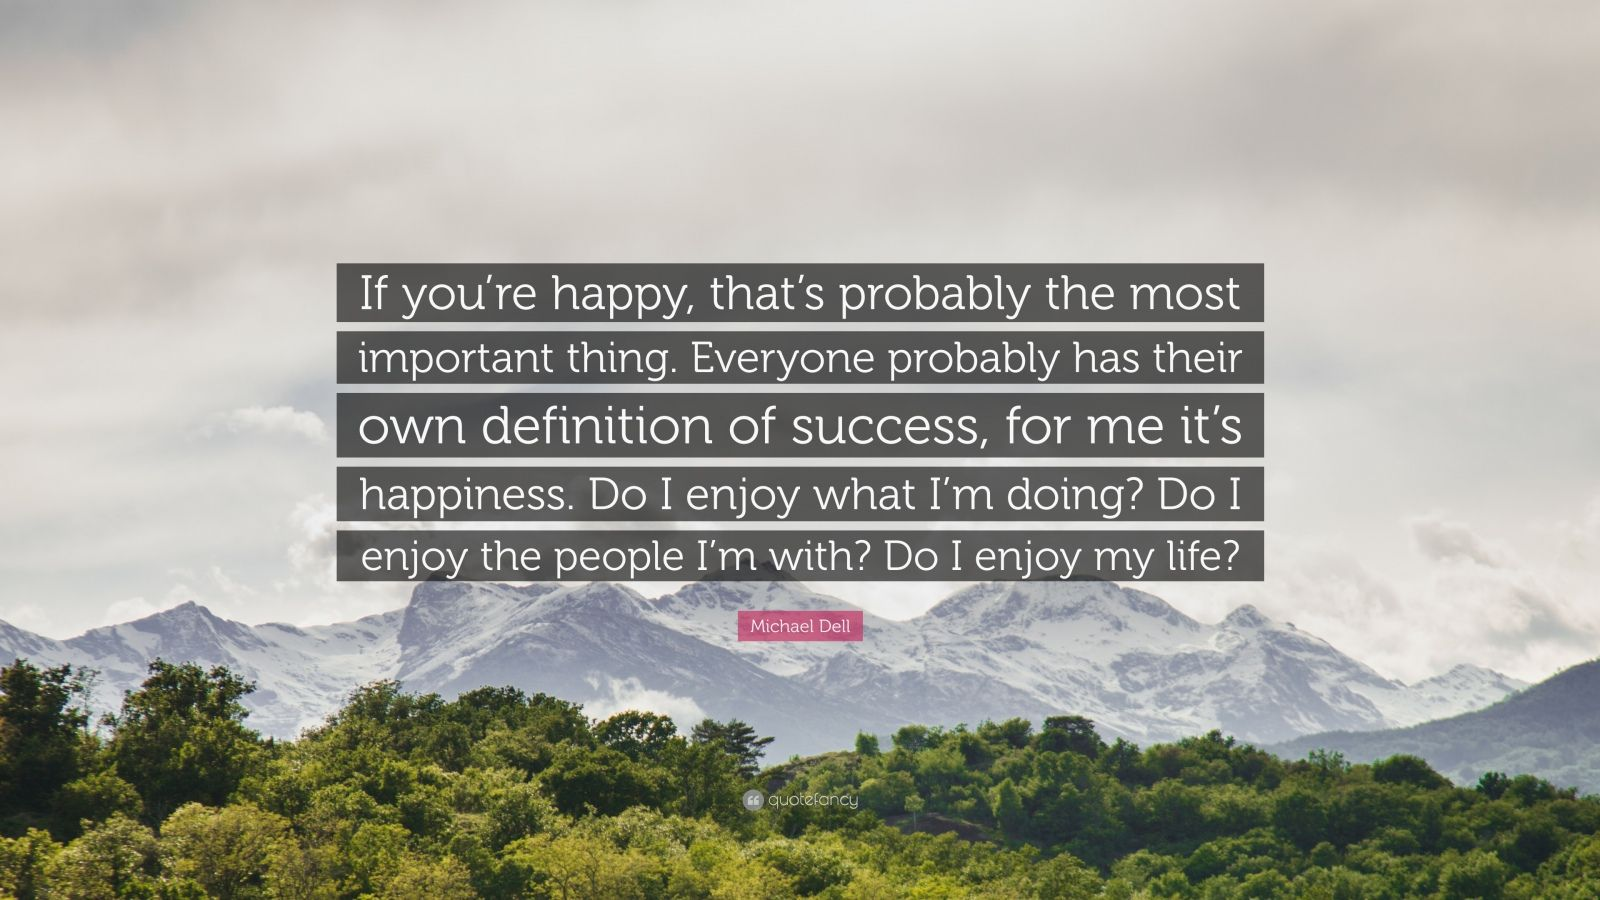 "Michael Dell Quote: ""If you're happy, that's probably the most important thing. Everyone probably has their own definition of success, for me it's happiness. Do I enjoy what I'm doing? Do I enjoy the people I'm with? Do I enjoy my life?"""